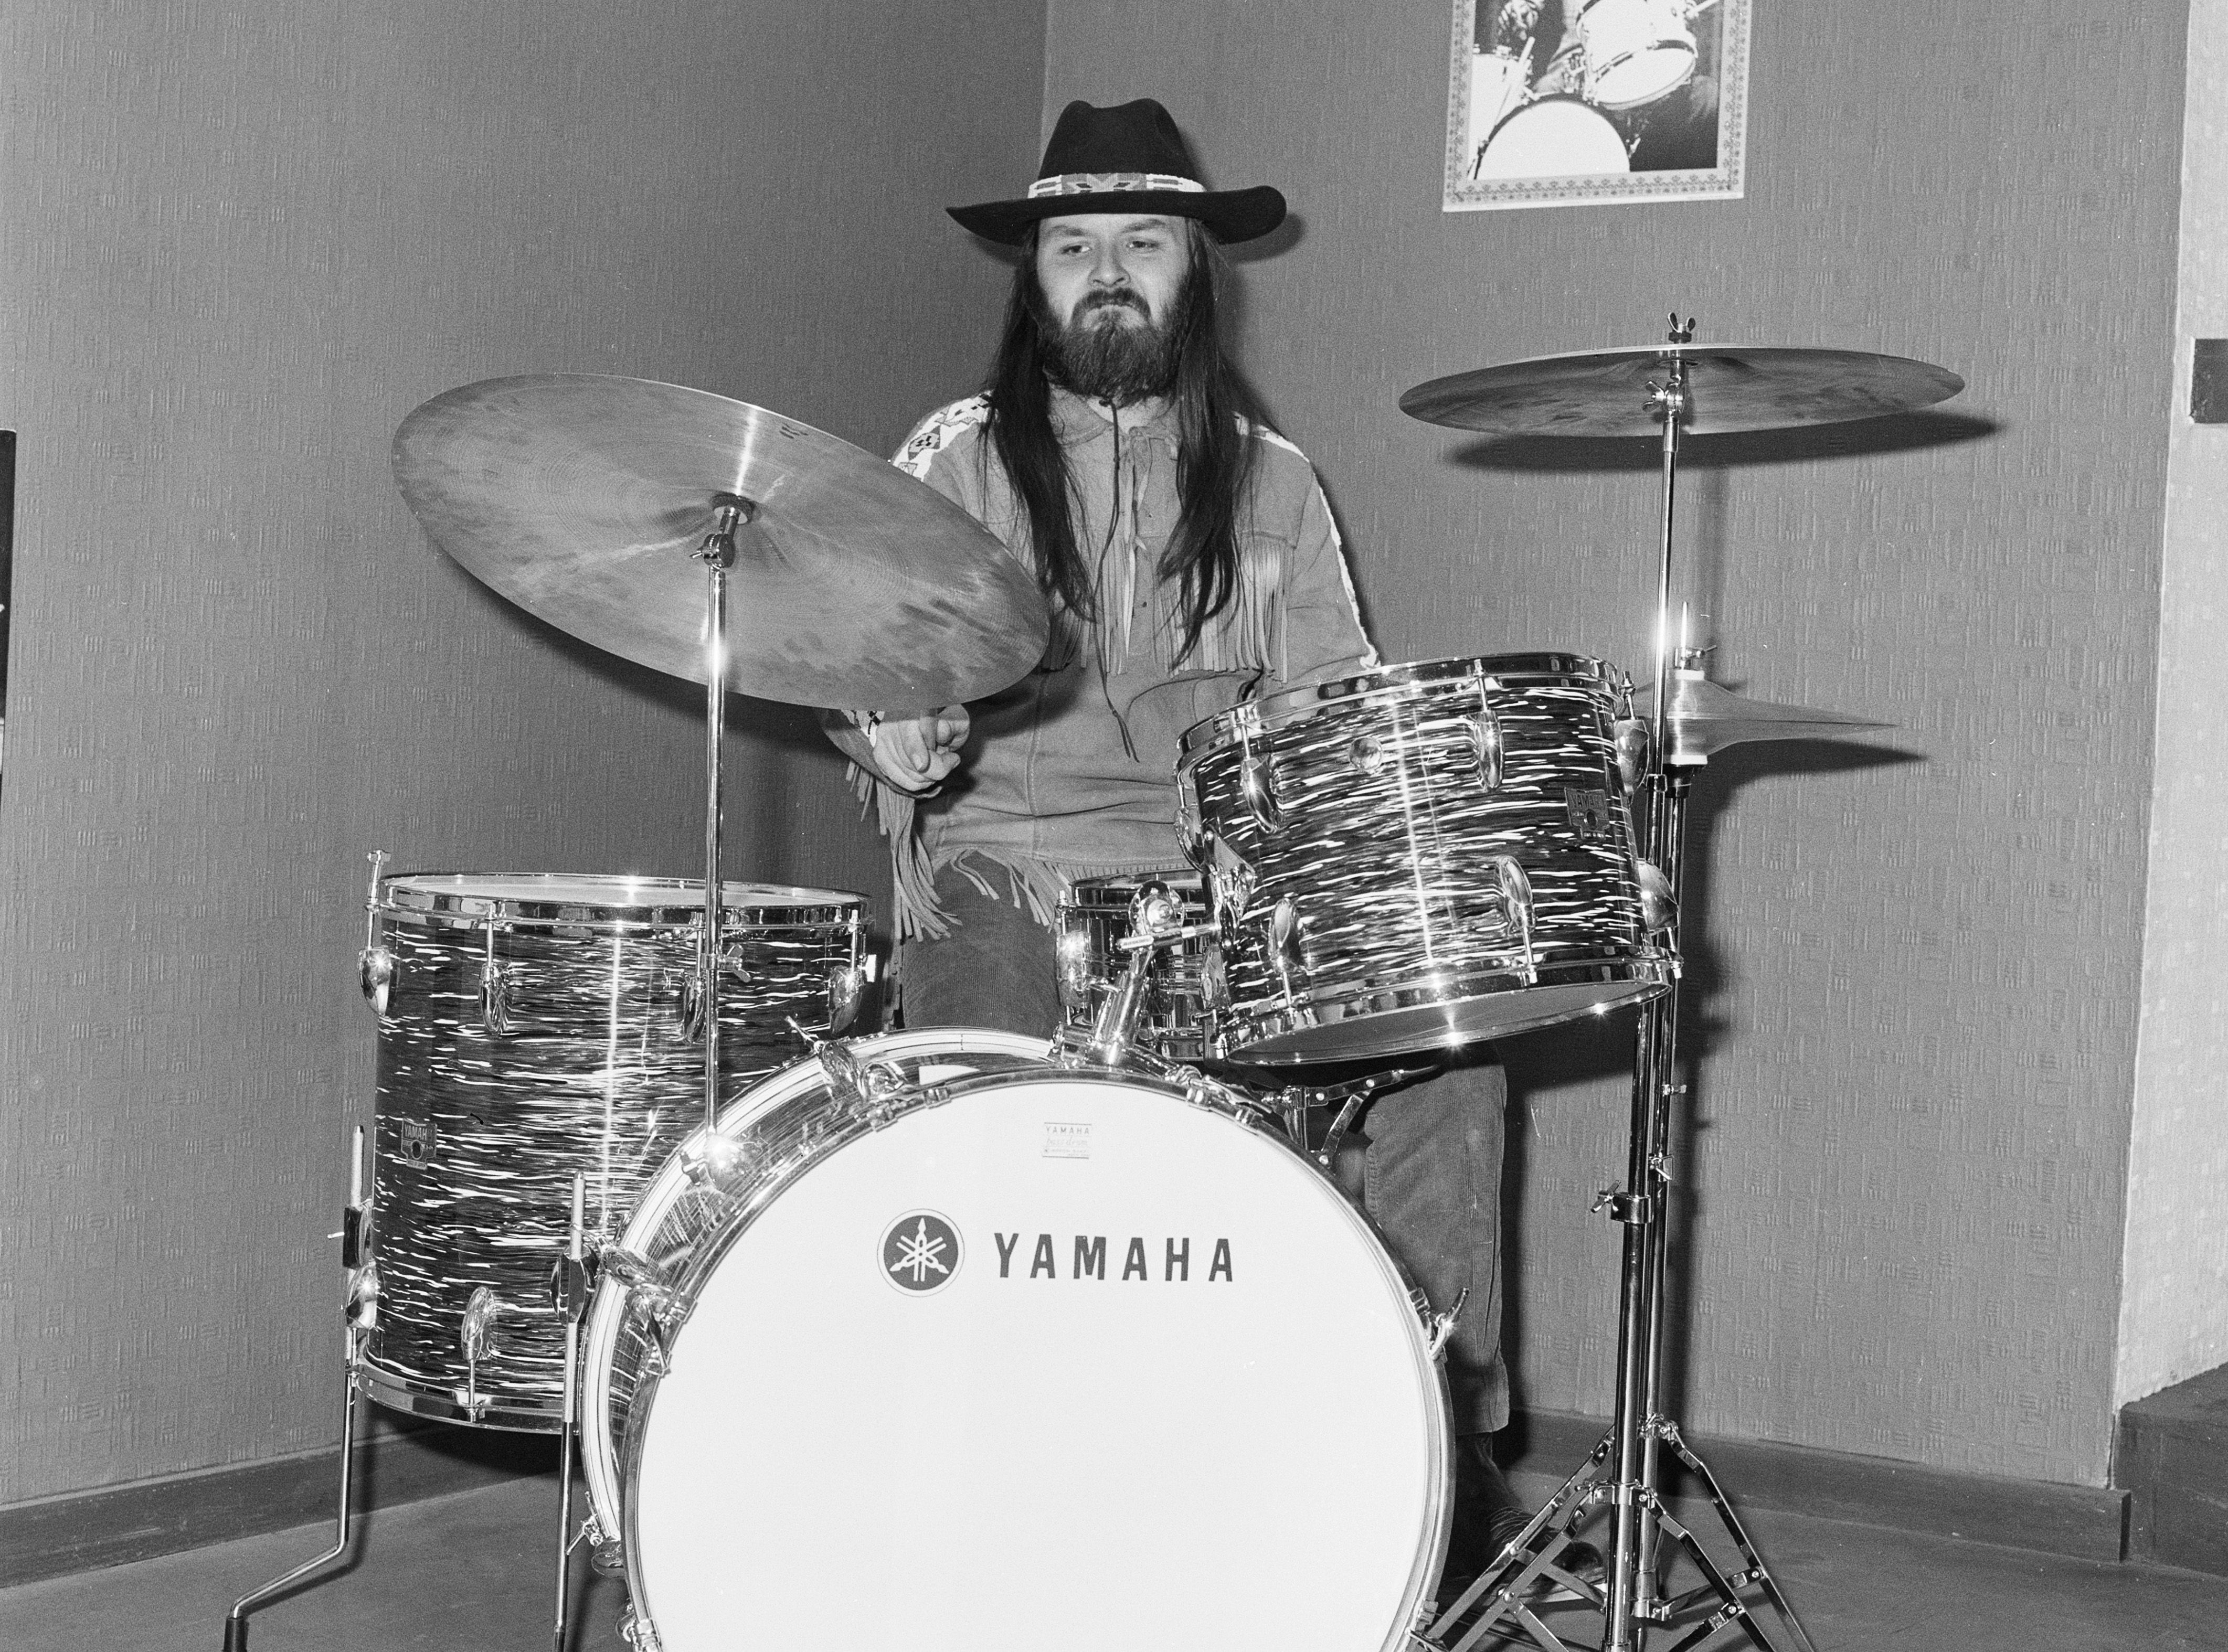 Keef Hartley playing drums